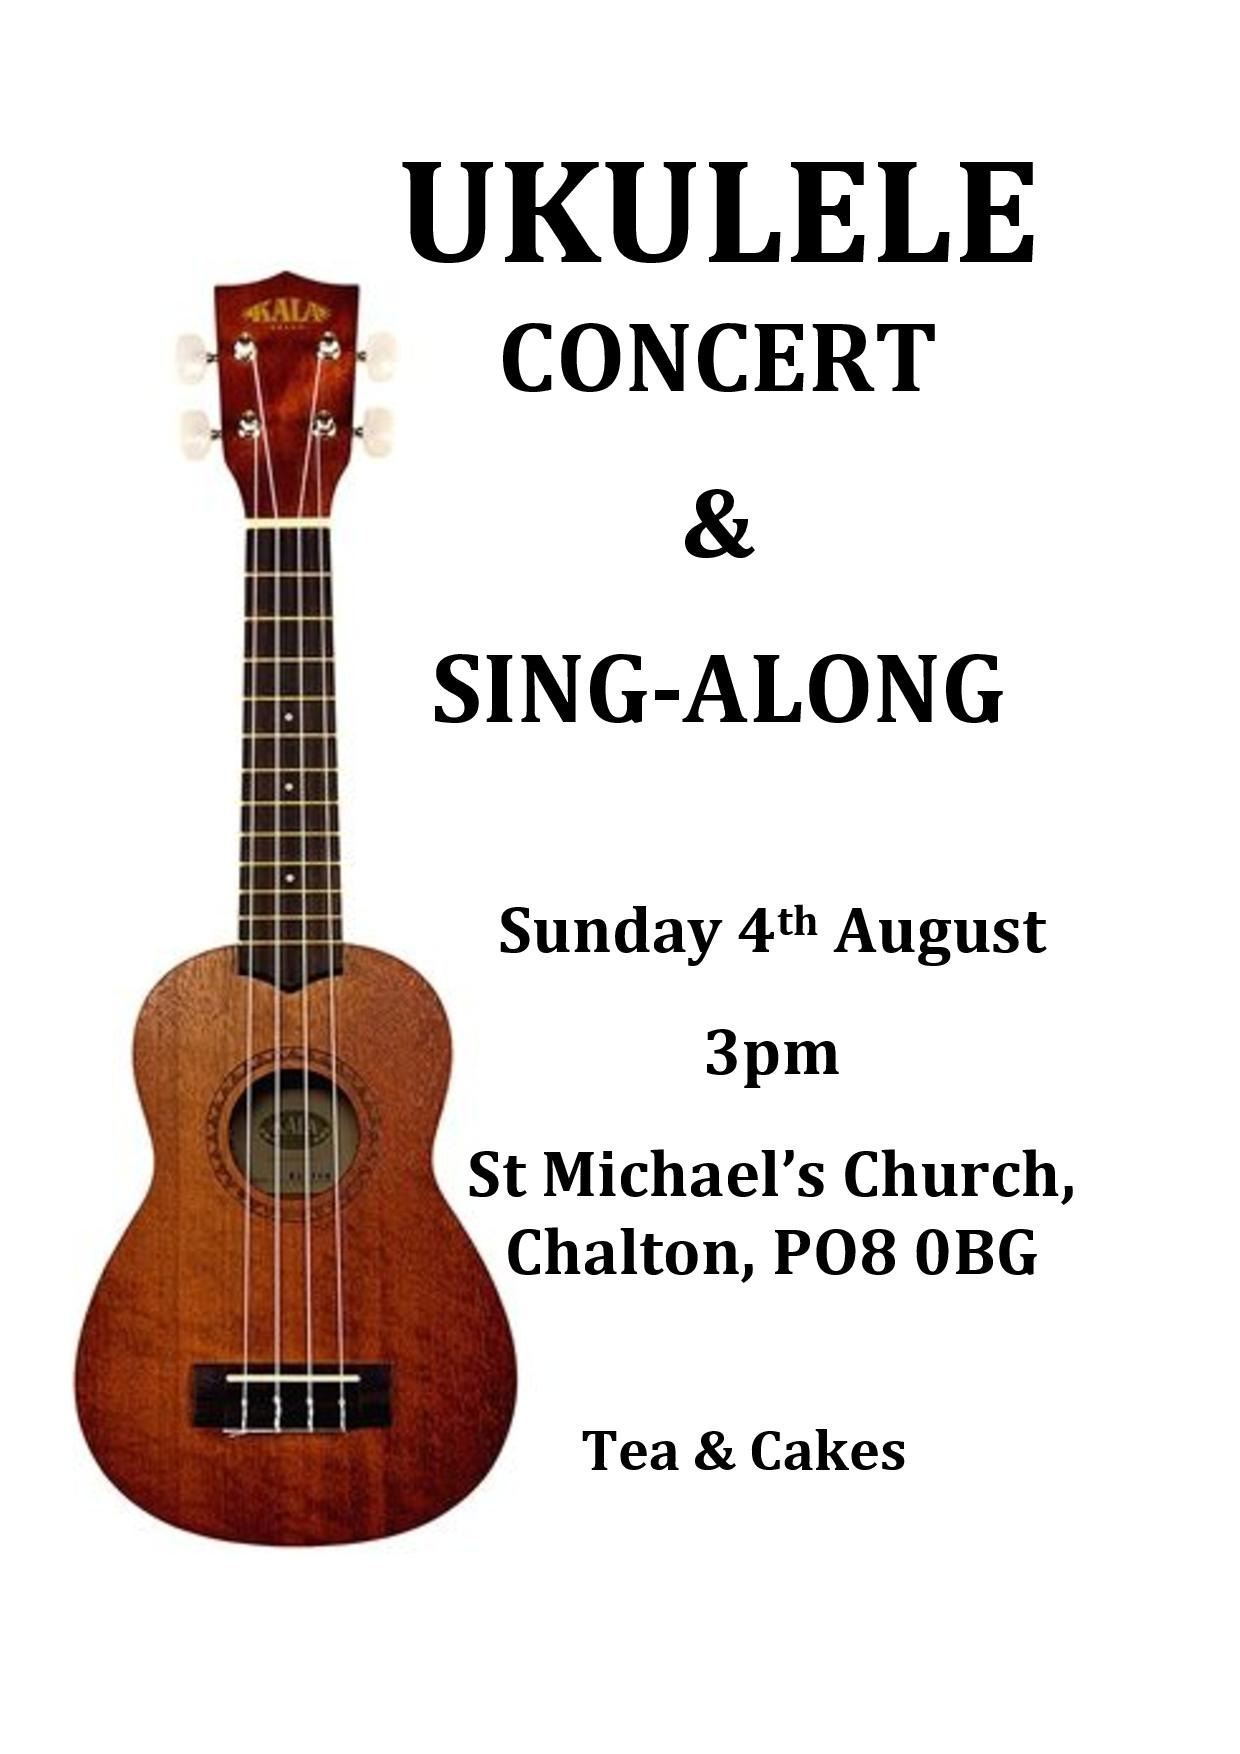 St Michael's Church, Ukulele Concert